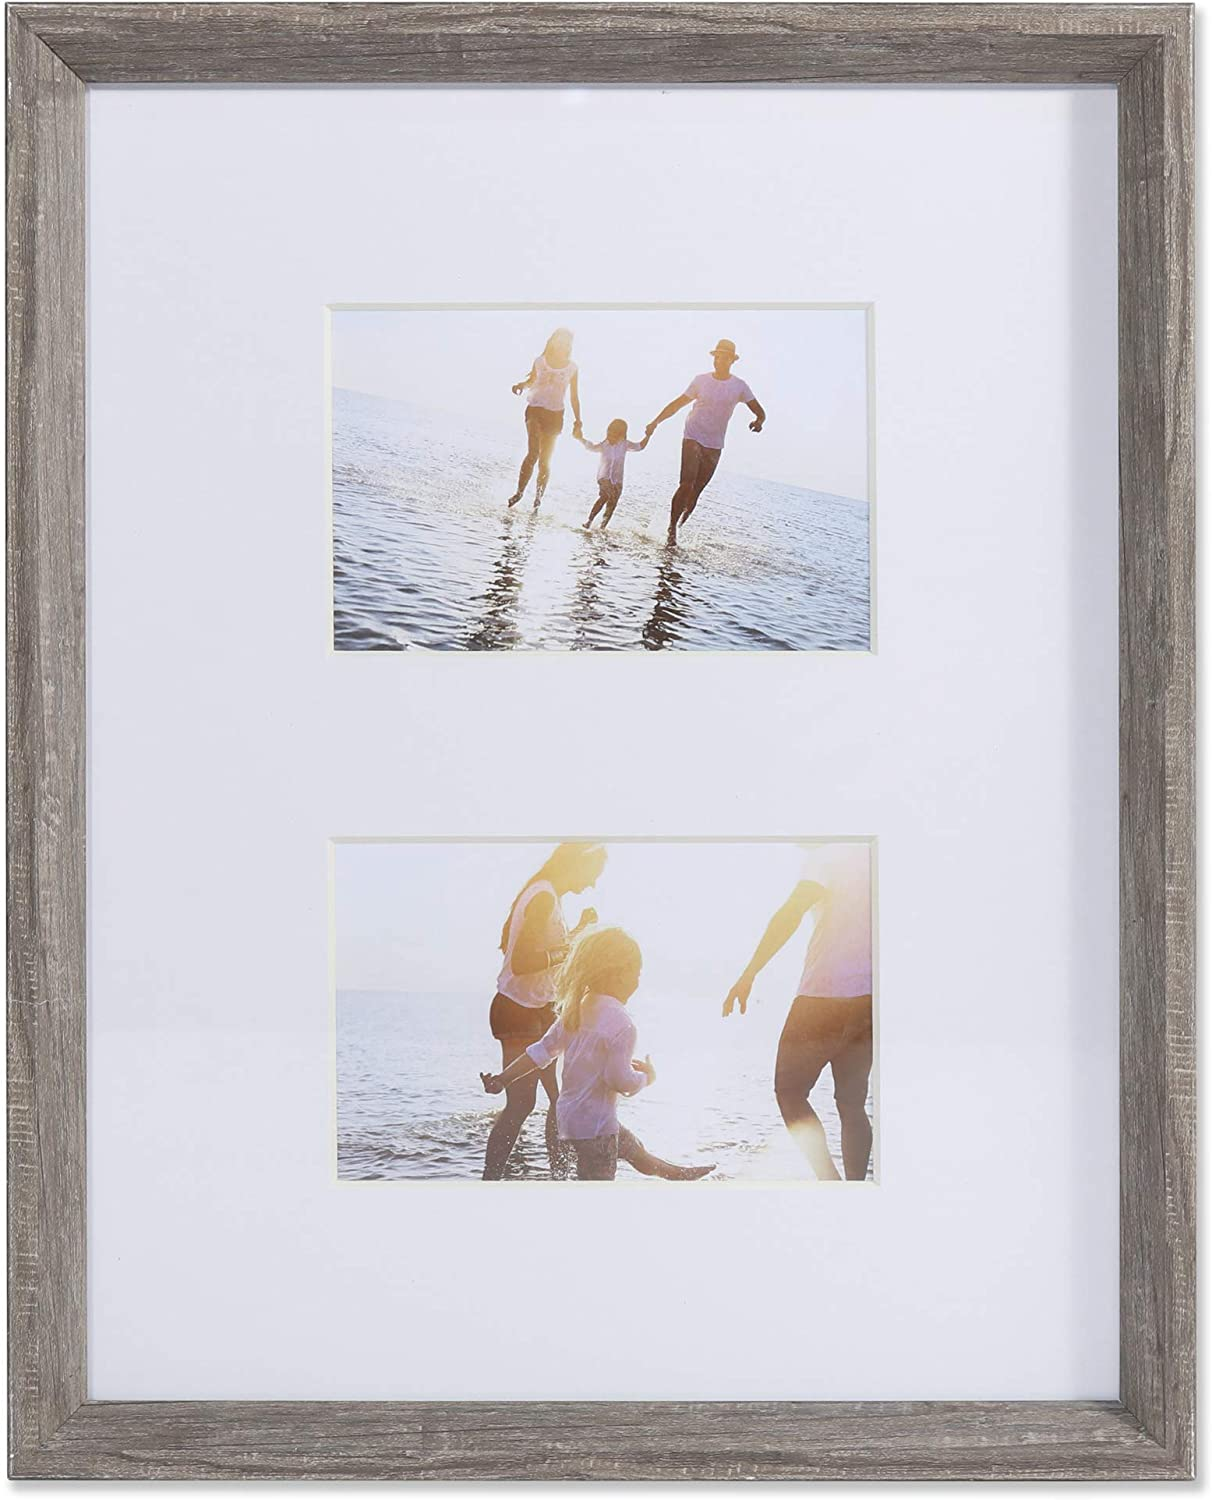 Lawrence Frames 4x6 Wide Border Double Matted Gallery Gray 11x14 Picture Frame